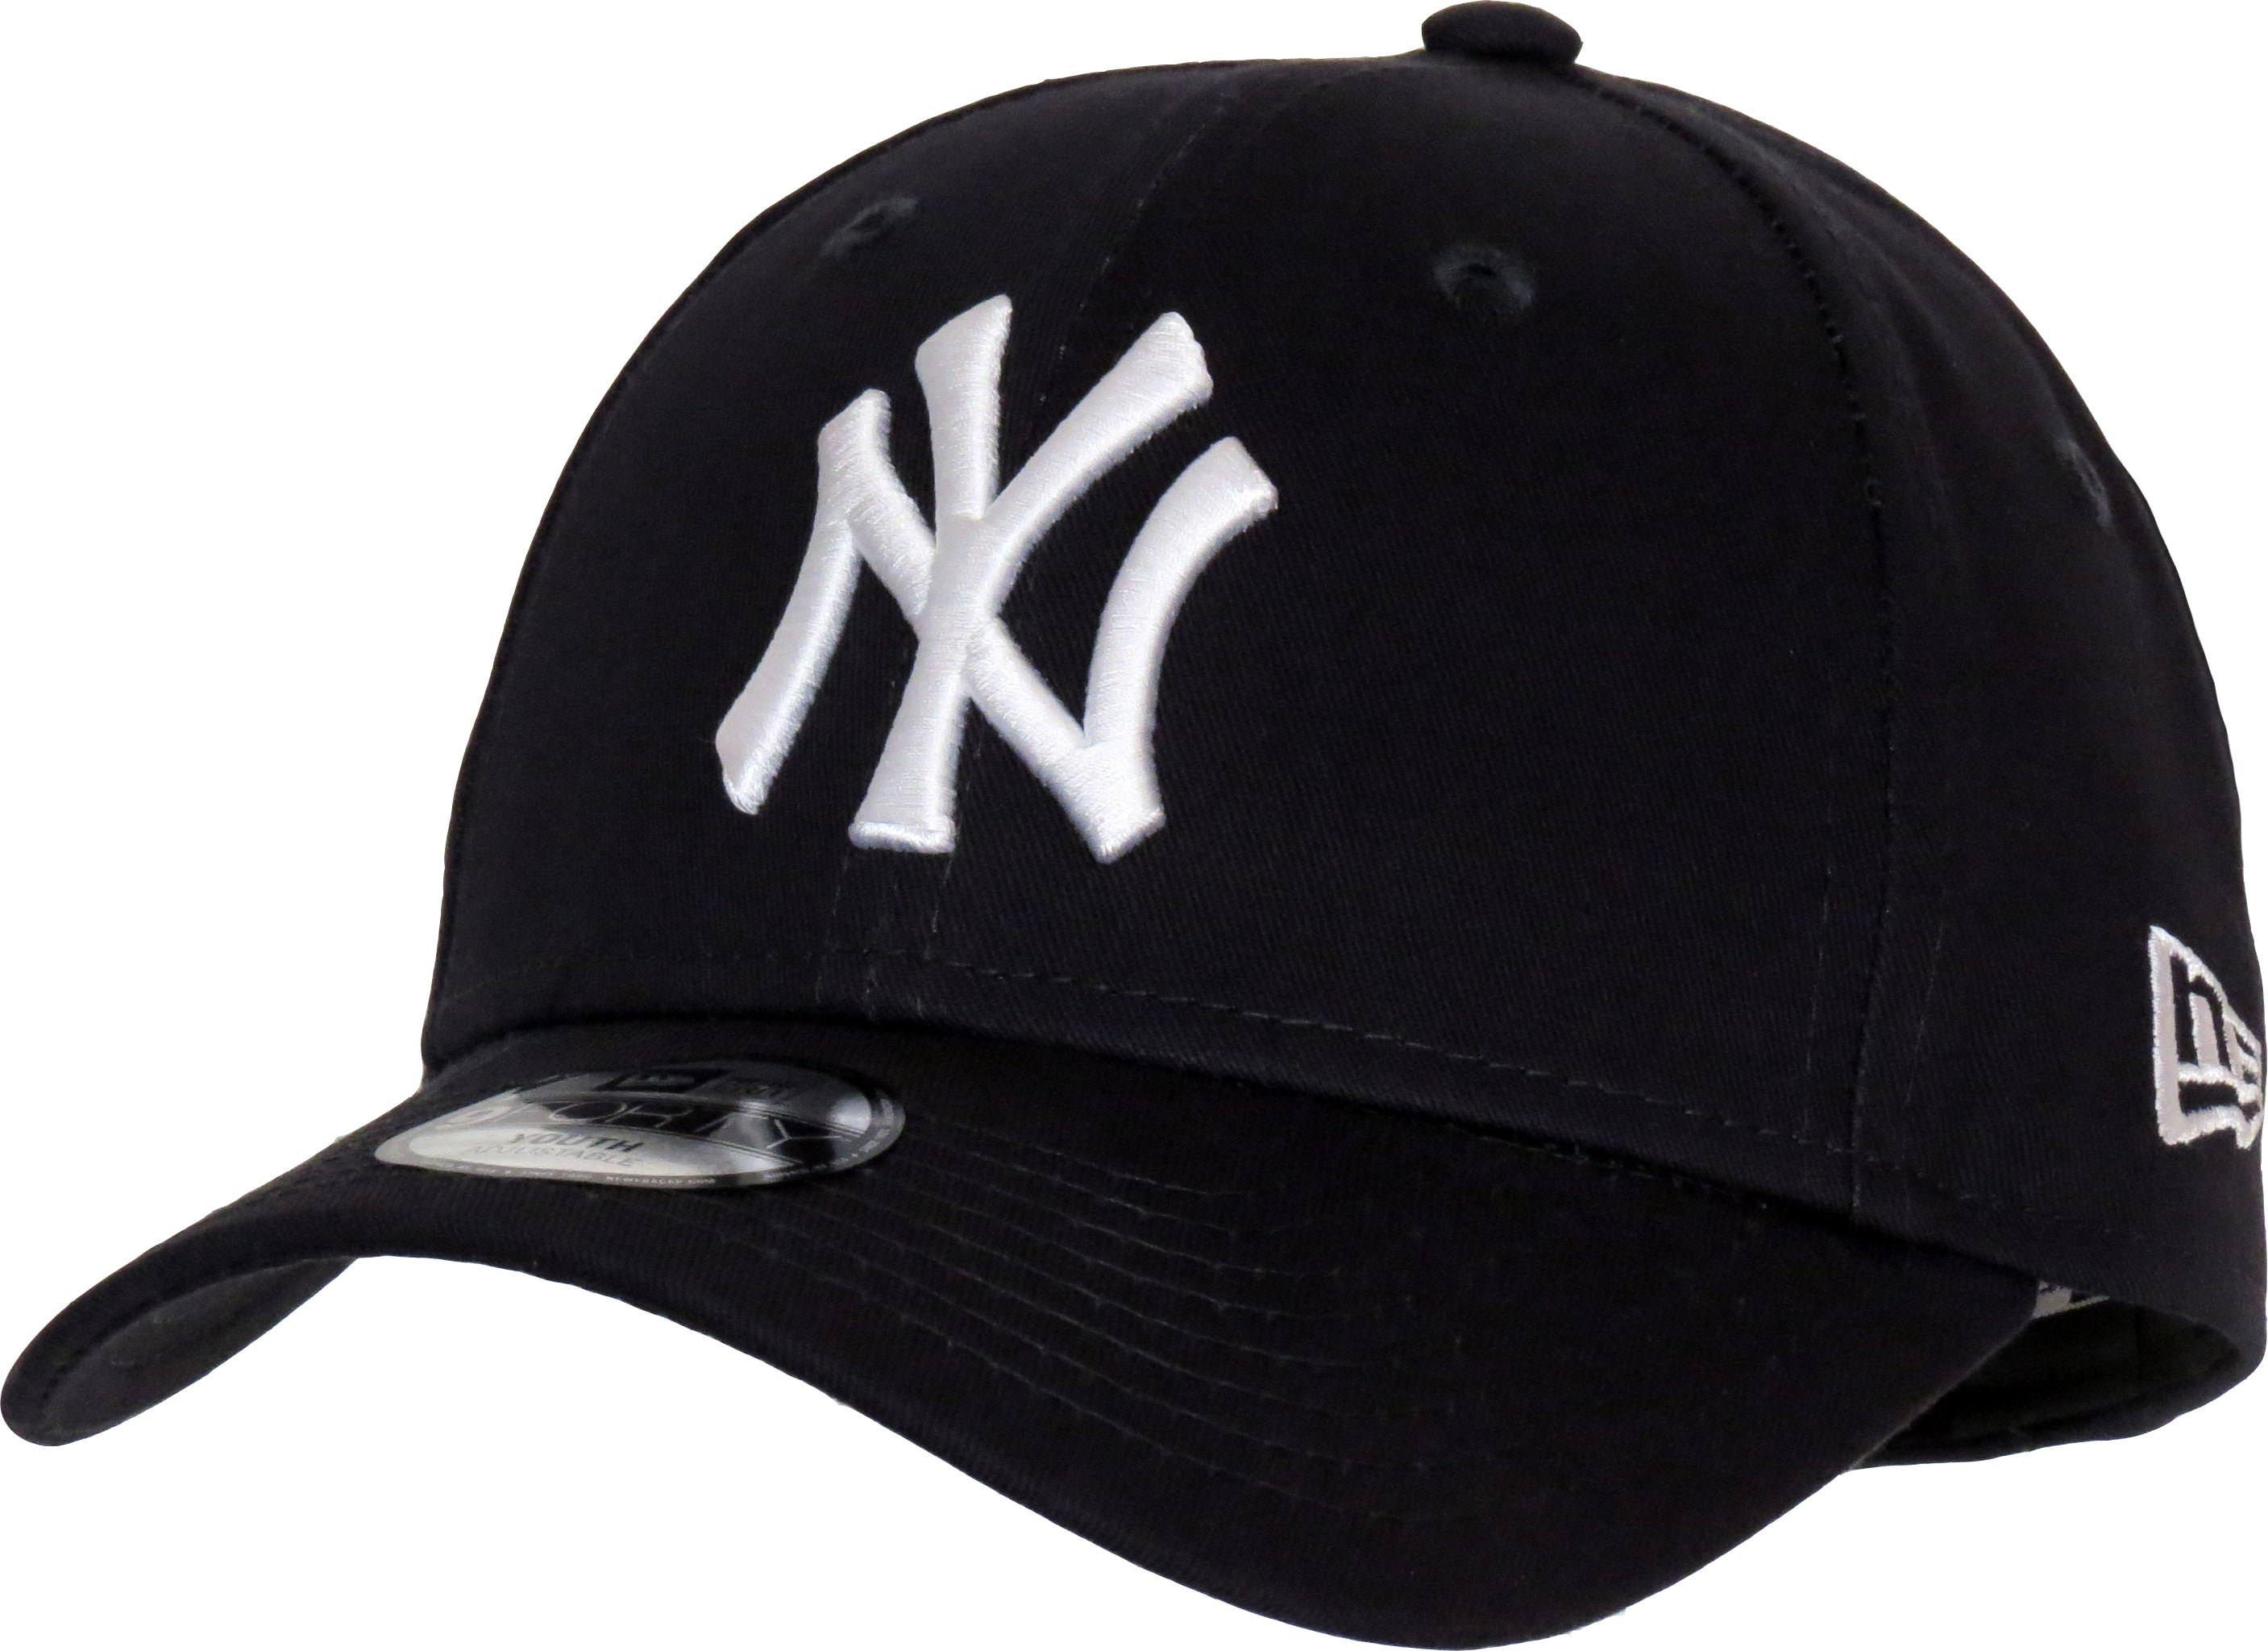 8c74971c64d NY Yankees New Era 940 Kids Navy Blue Baseball Cap (Age 4 - 10 Years) –  lovemycap